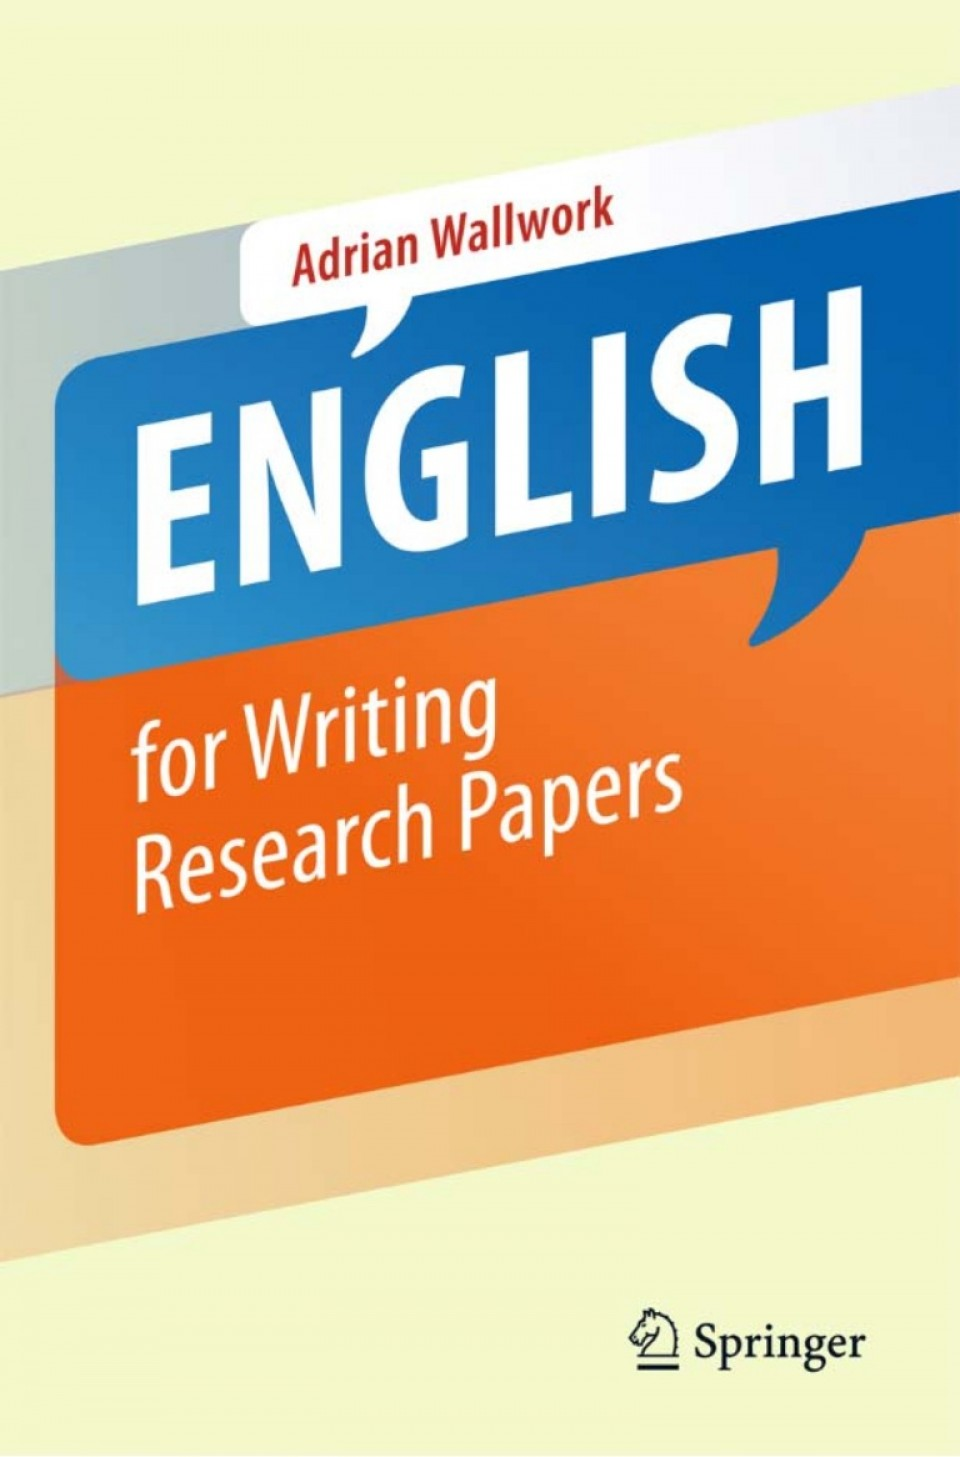 016 Research Paper Writing Papers Englishforwritingresearchpapers Conversion Gate01 Thumbnail Unique A Complete Guide Pdf Download James D Lester 960